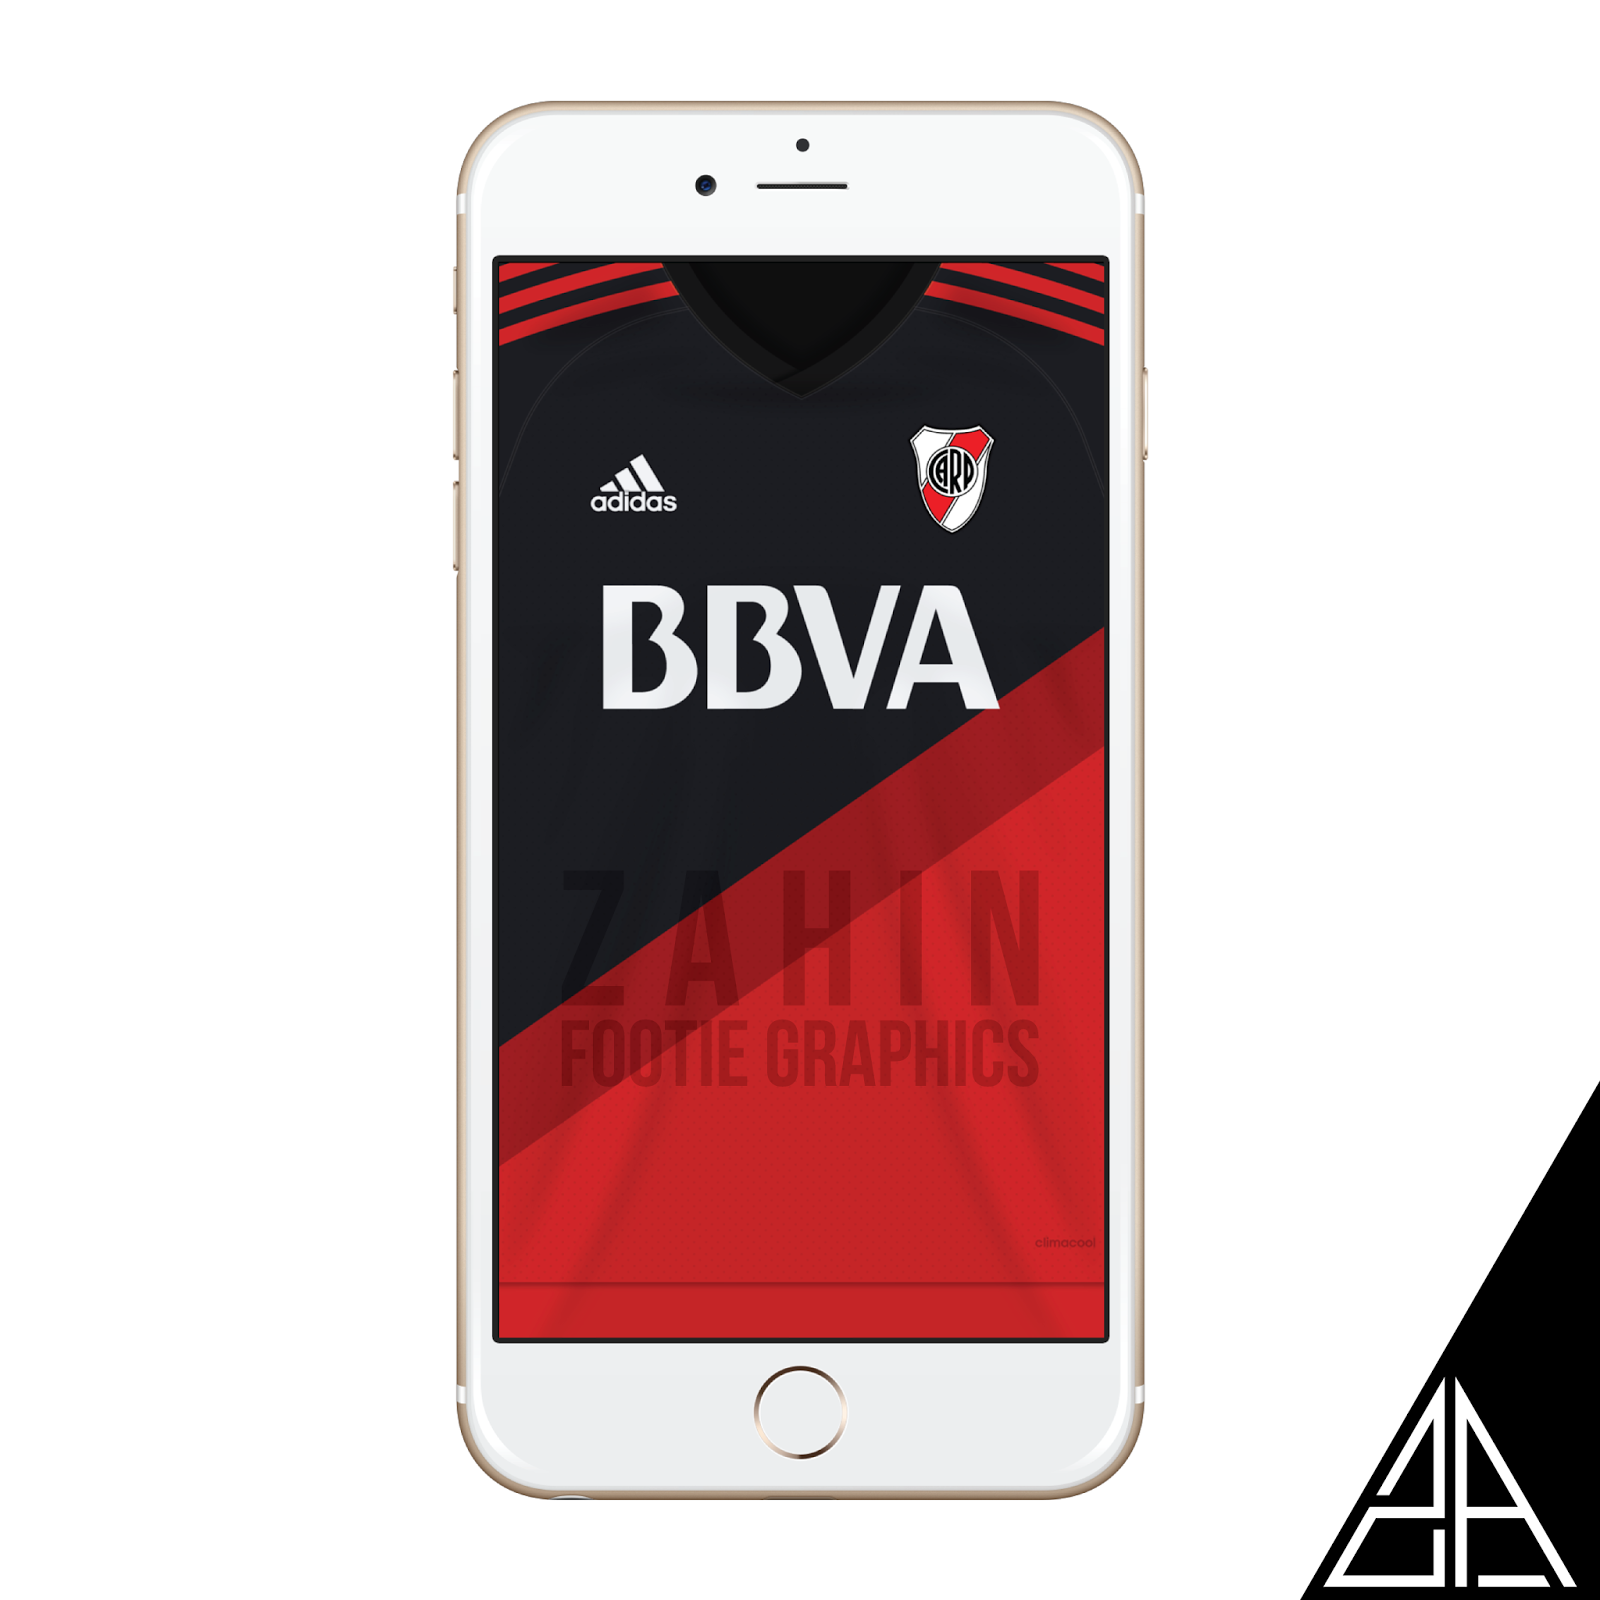 River Plate 2015 16 Zahin Footie Graphics